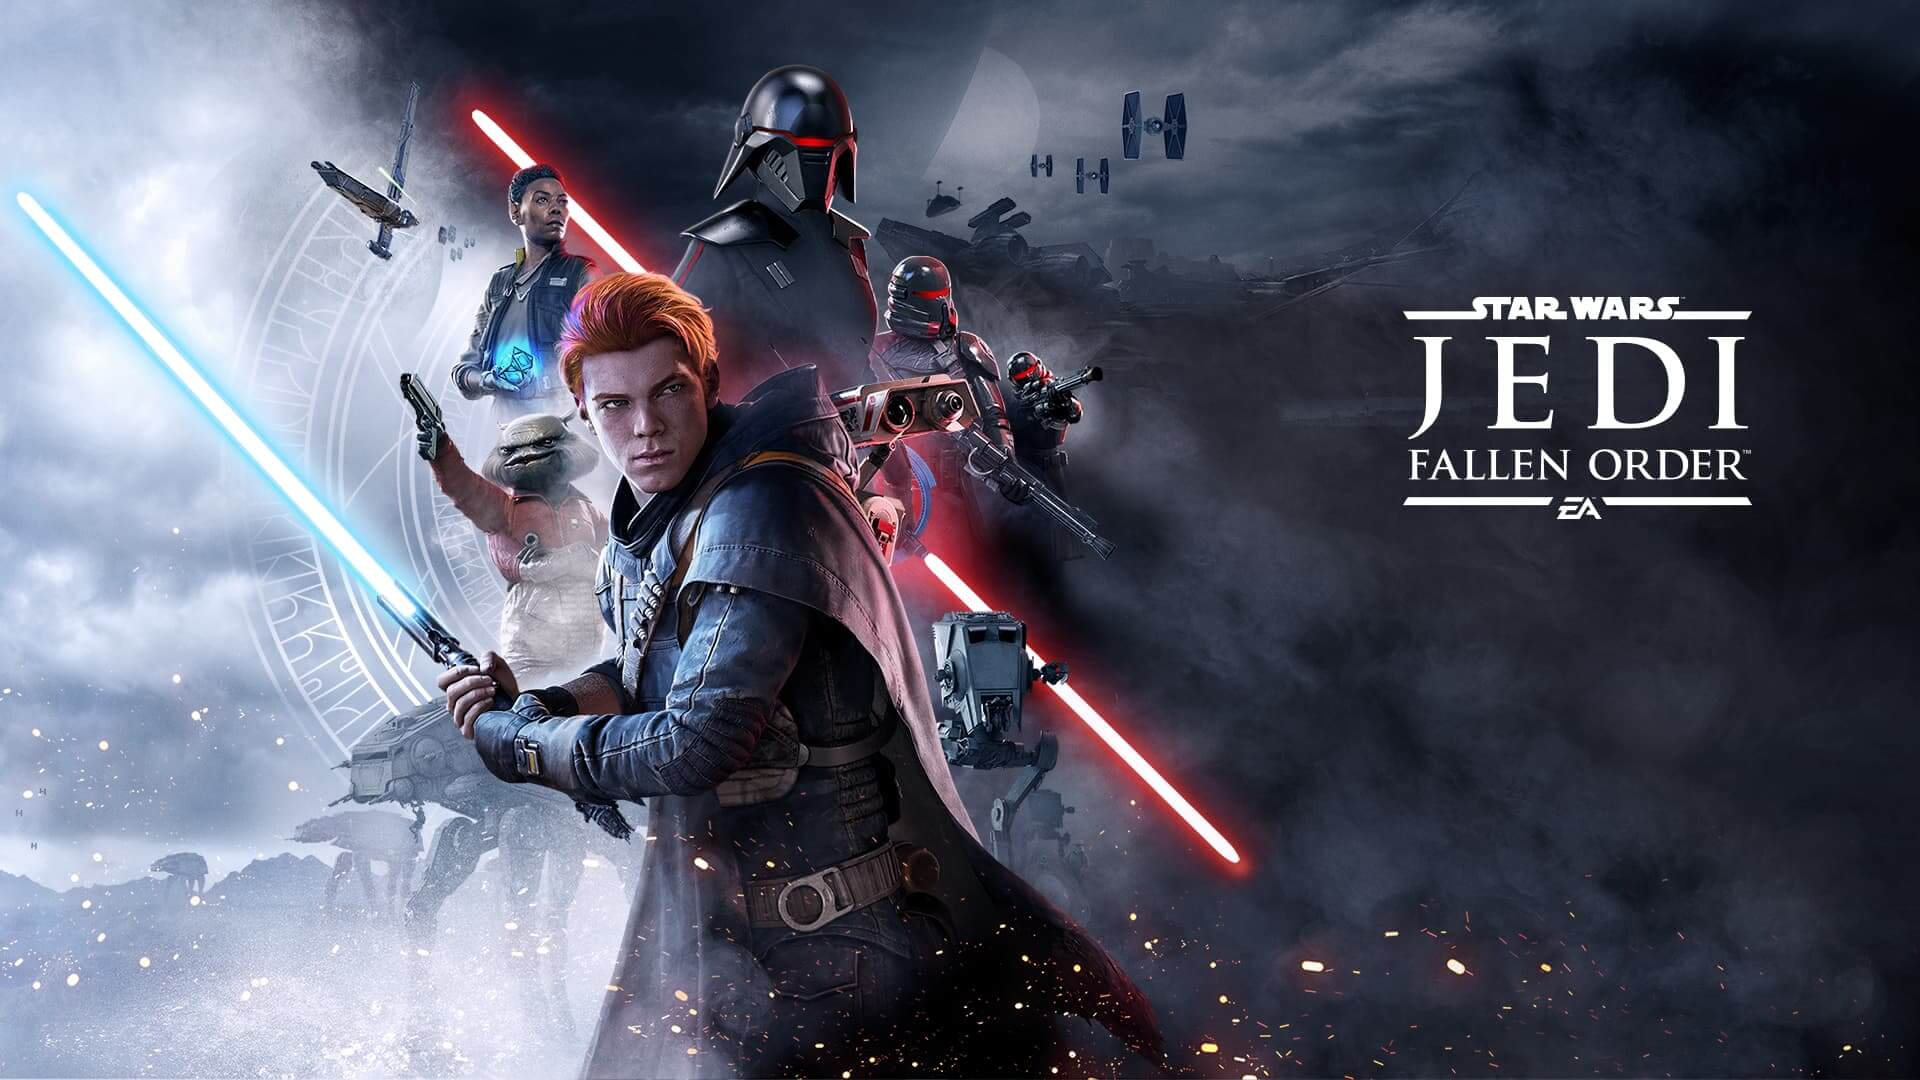 Star Wars: Jedi Fallen Order Recorded Fastest-Selling Digital Launch in Franchise History